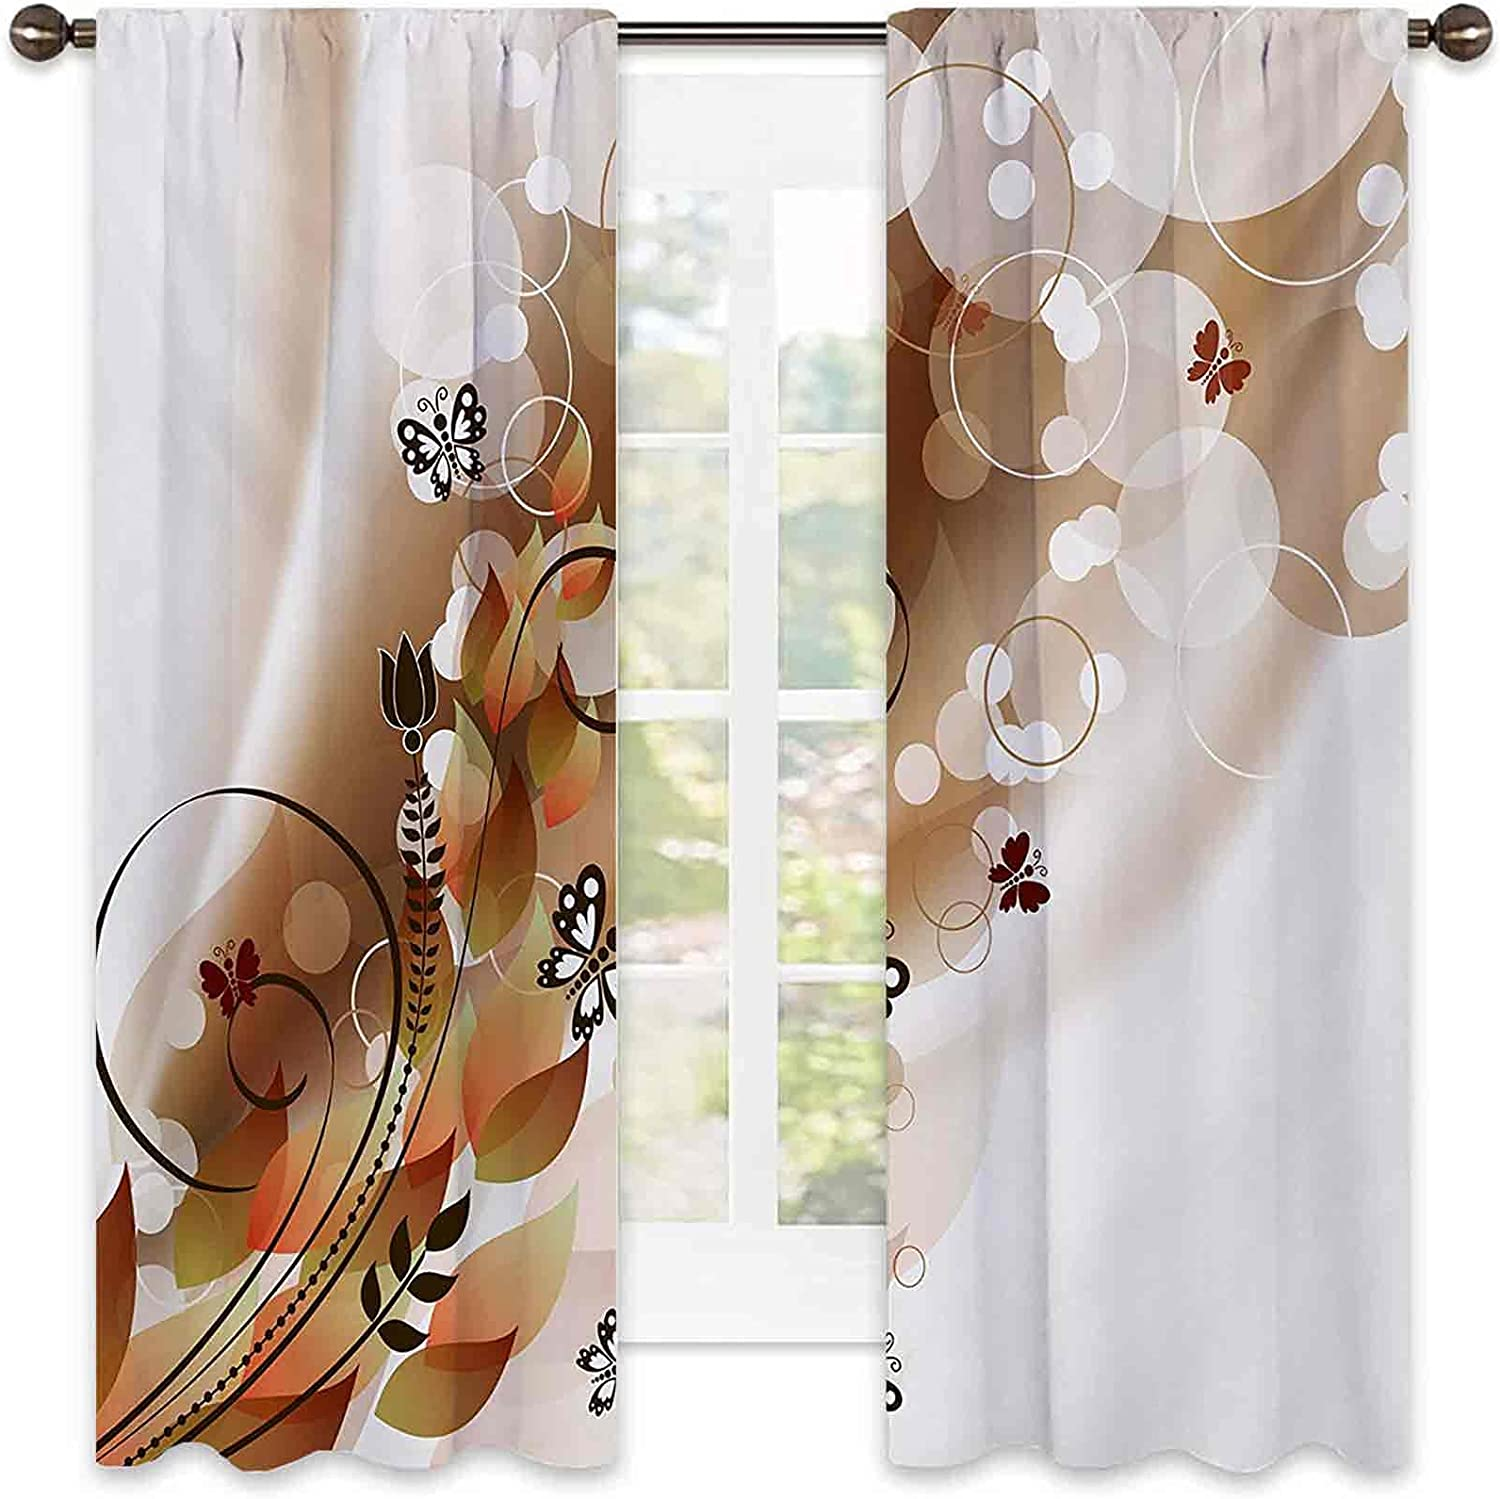 Tan Bedroom Rod Pocket At the price Translated of surprise Blackout Themed Curtains Spring Abstract